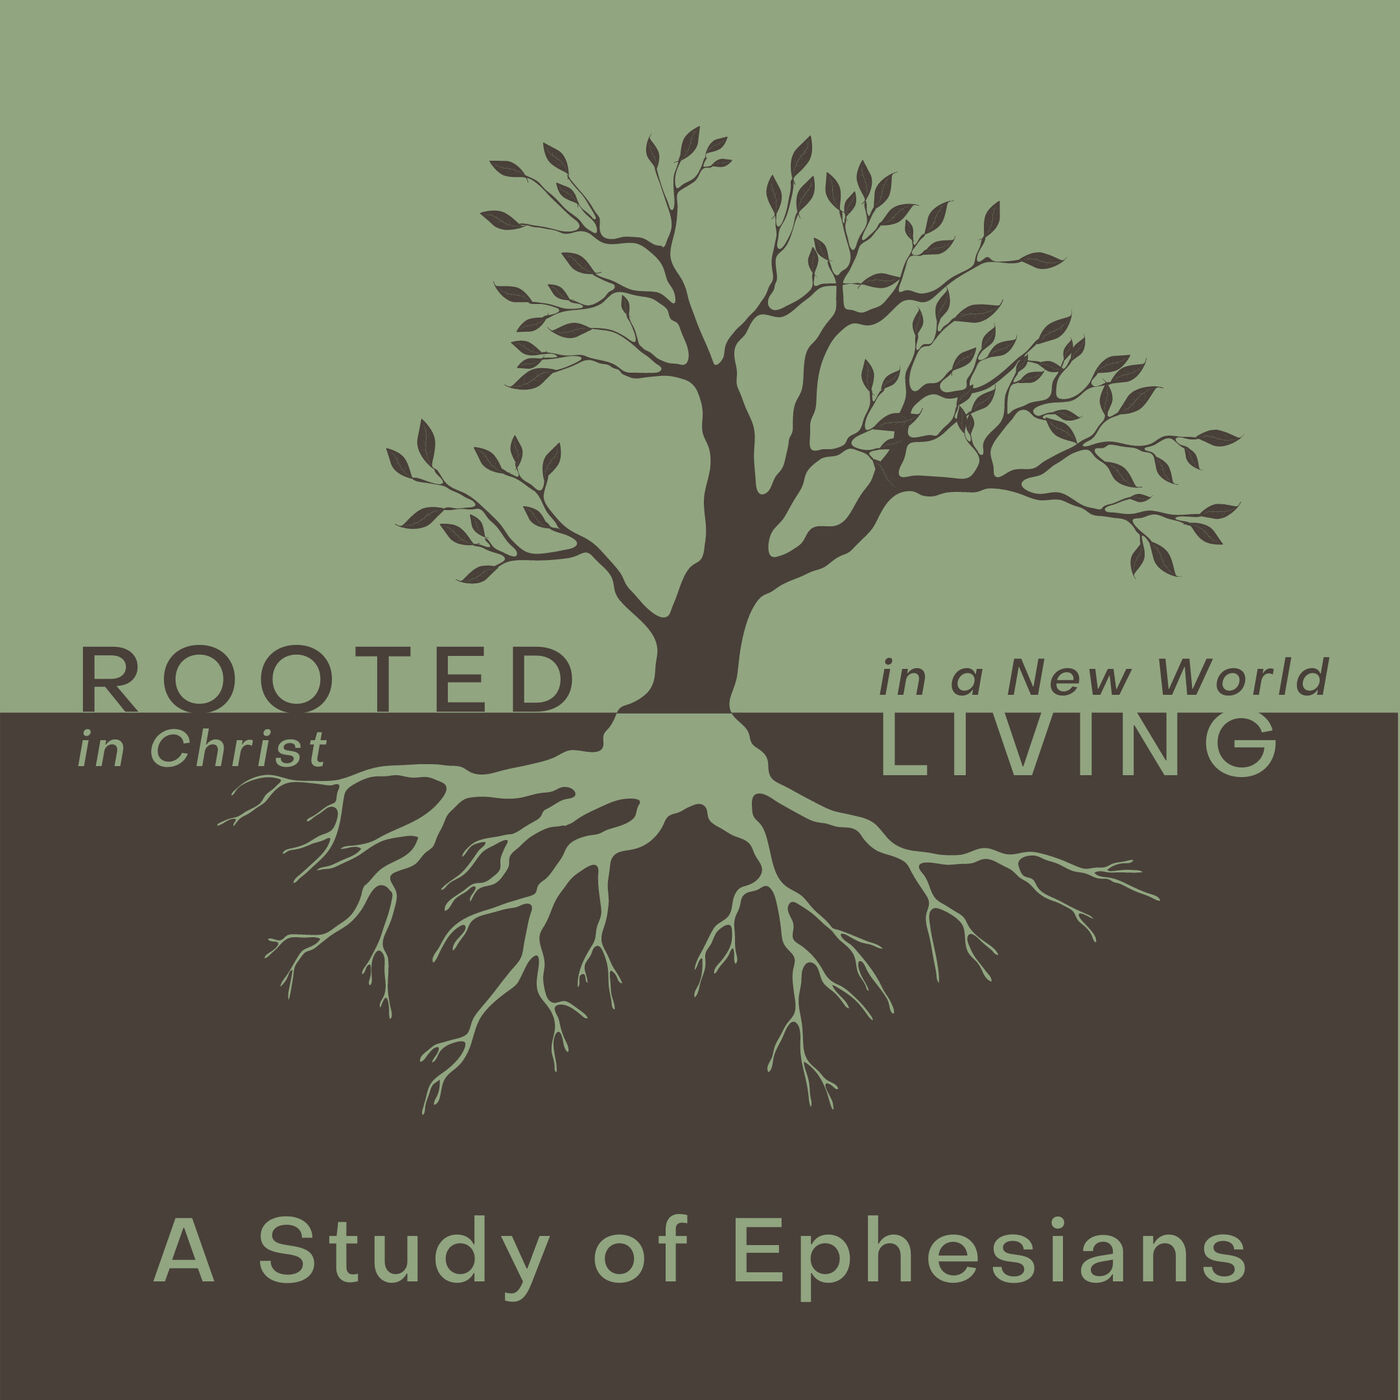 Rooted In Christ - Living in a New World - Counter Cultural Sin Eph. 2:1-3